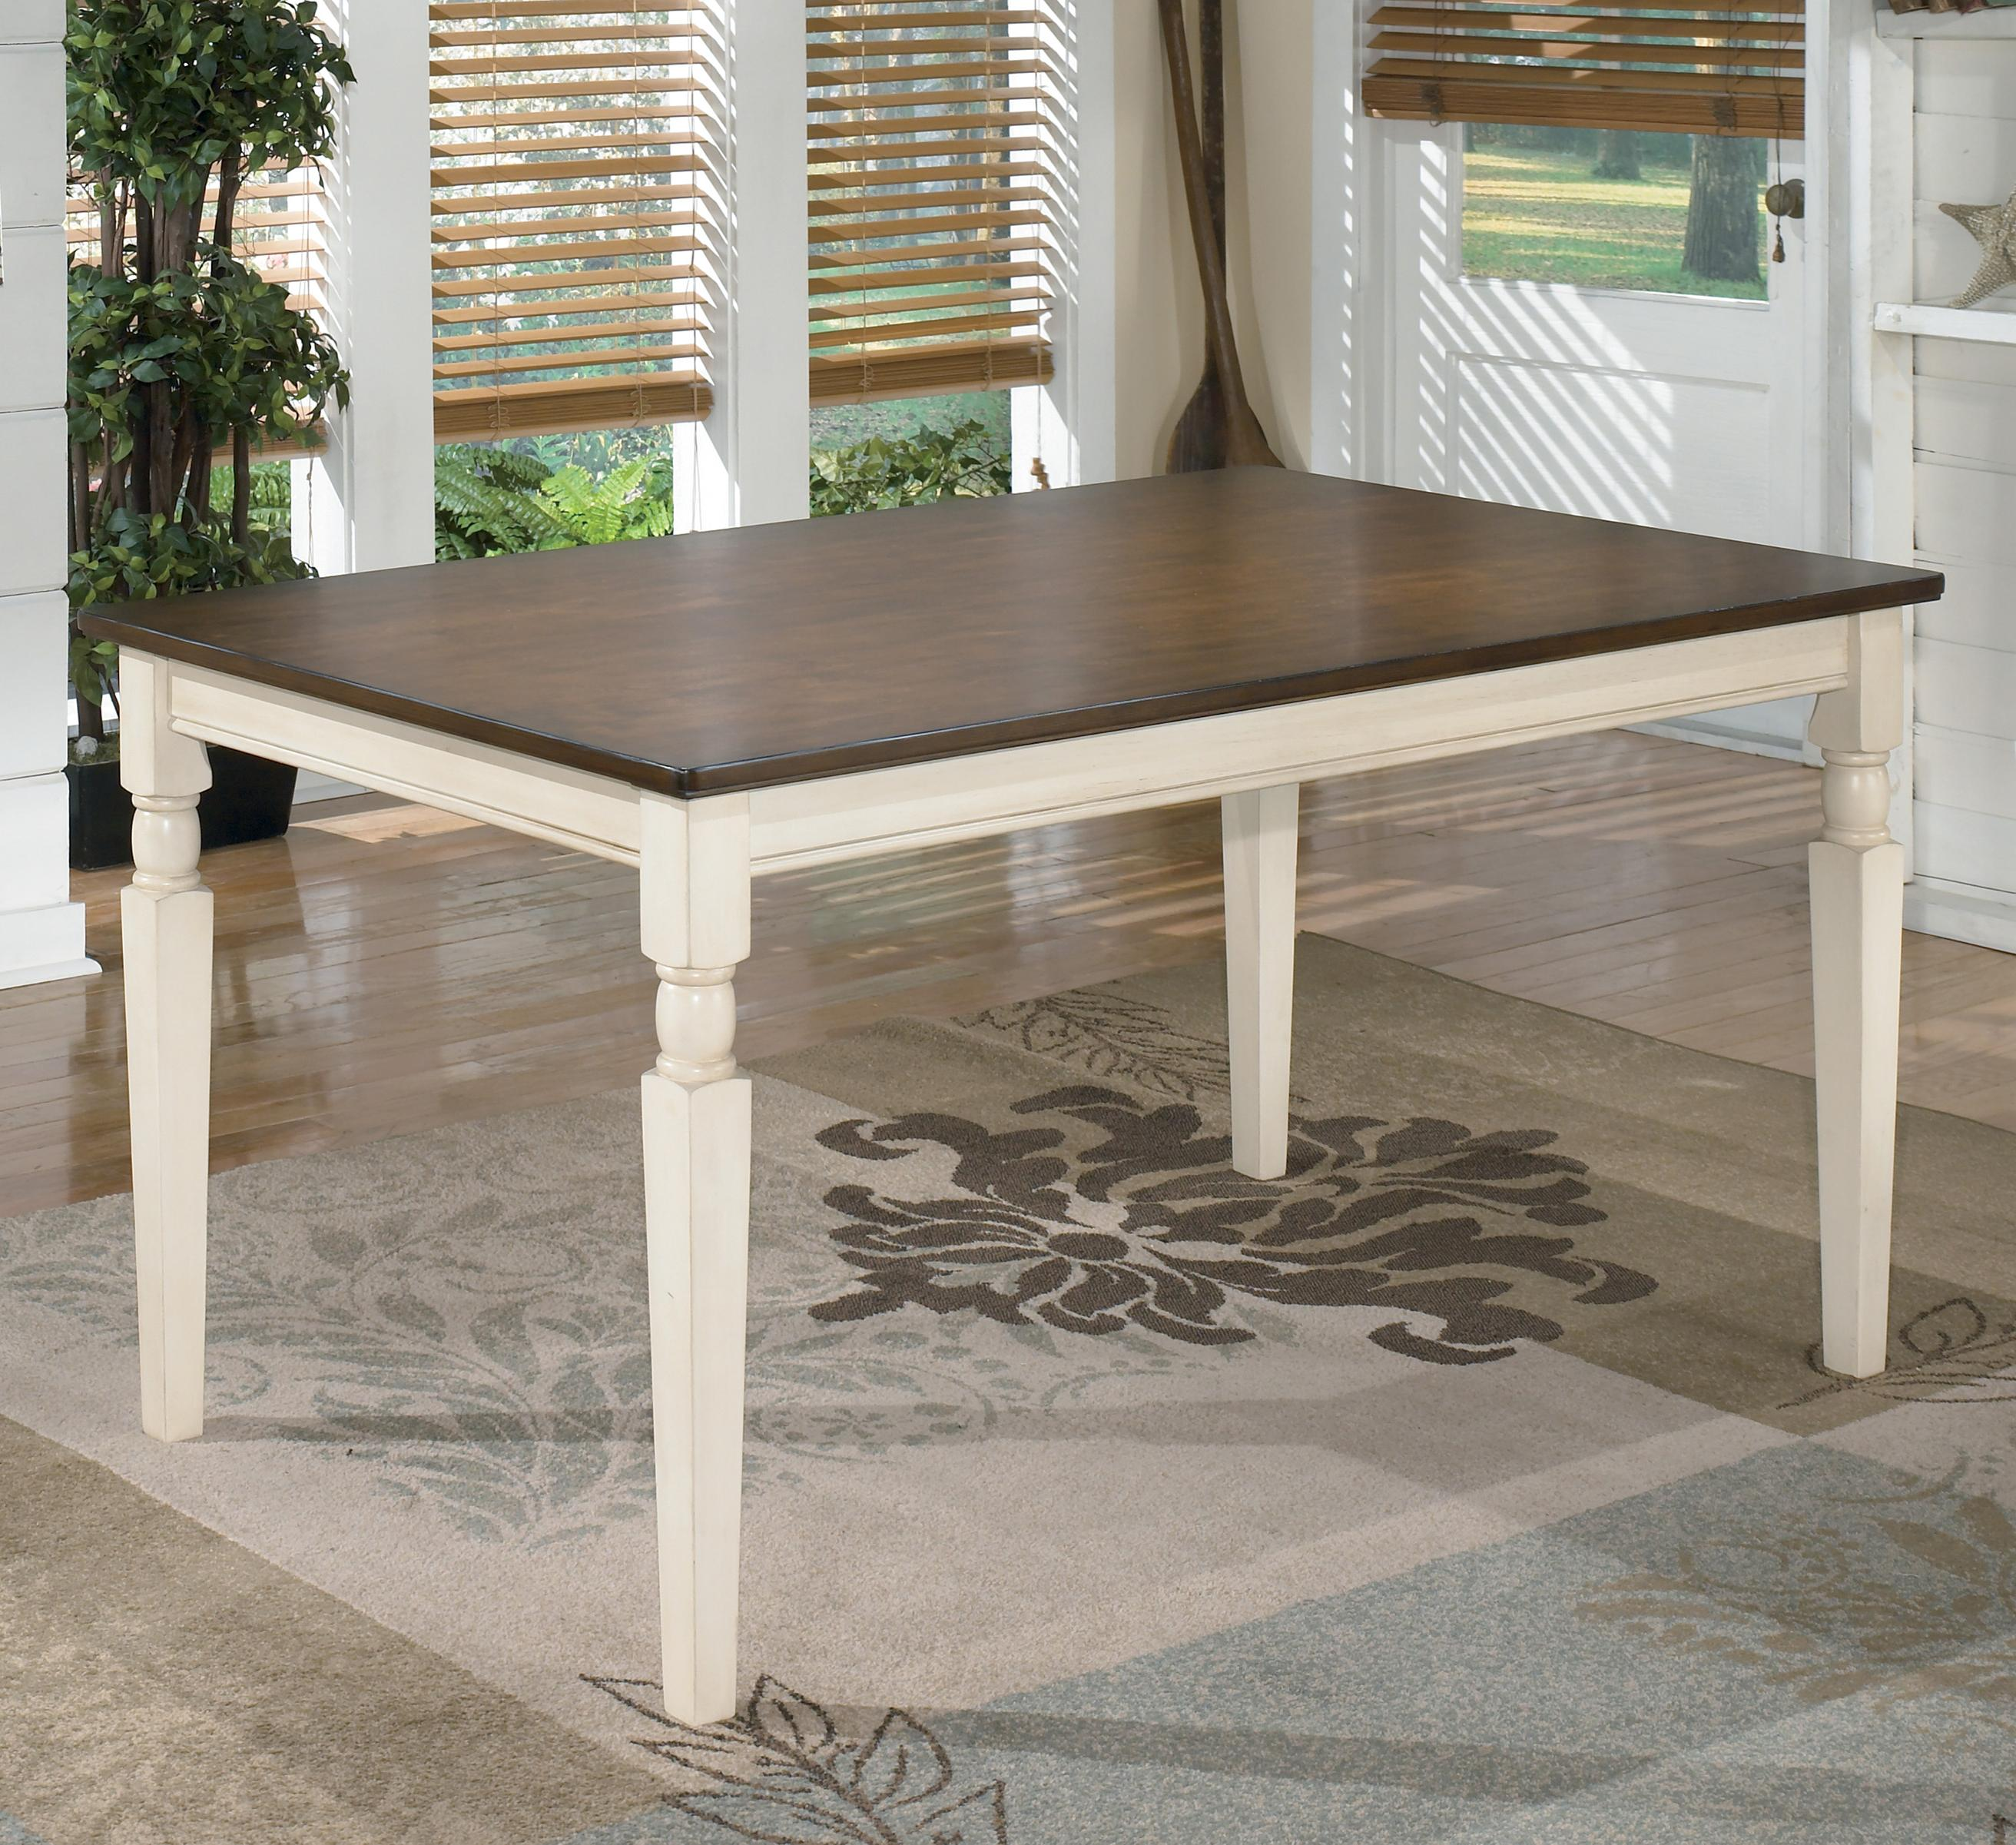 Whitesburg Rectangular Dining Room Table at Sadler's Home Furnishings